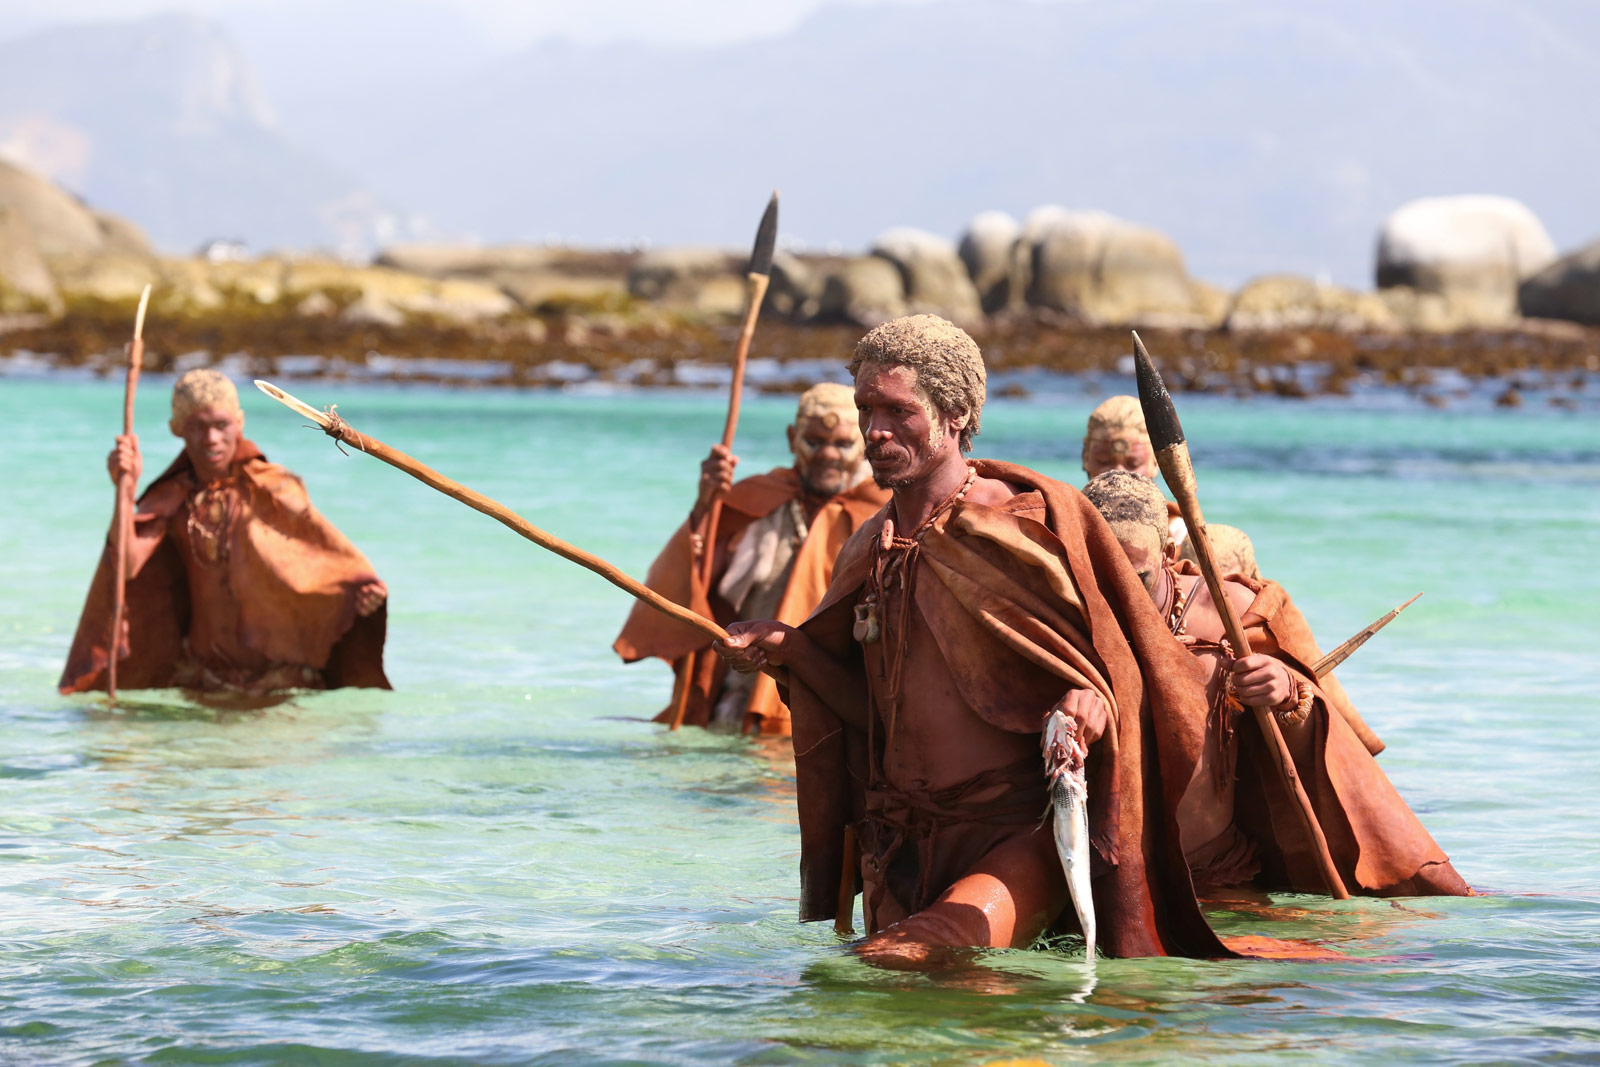 stone-age-man-in-the-ocean